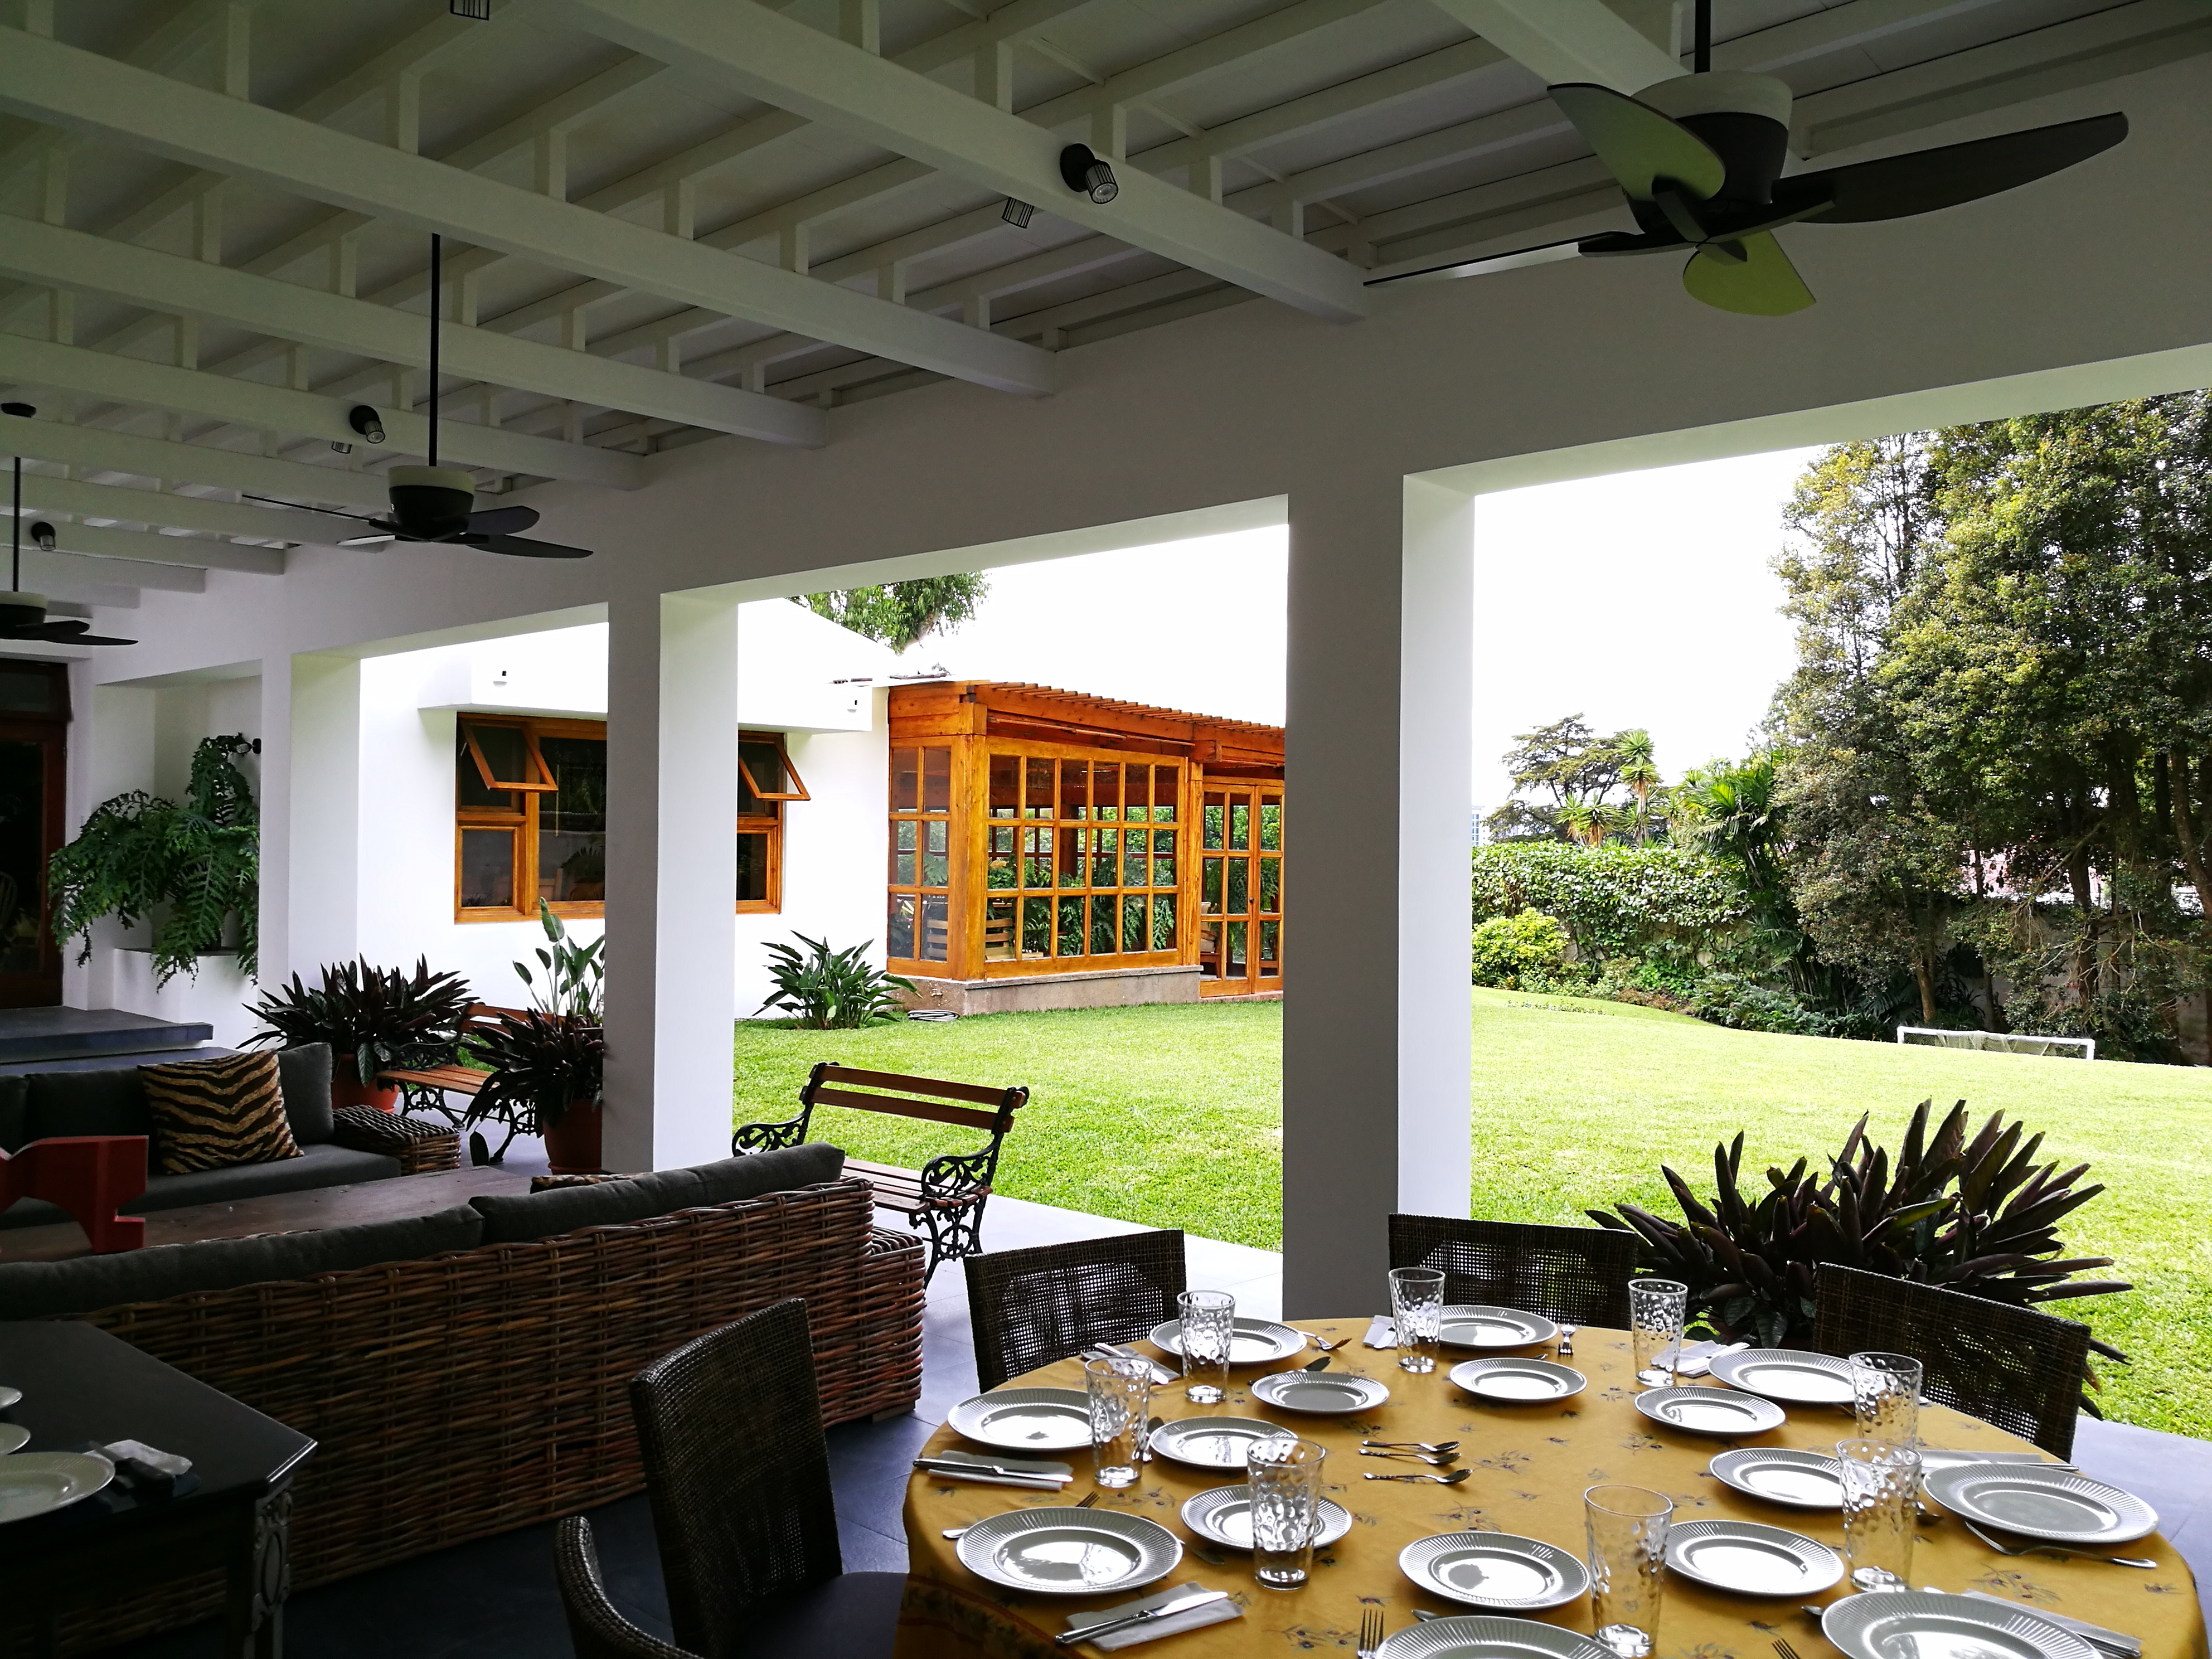 Refreshing a home with innovative additions, garage and pergola